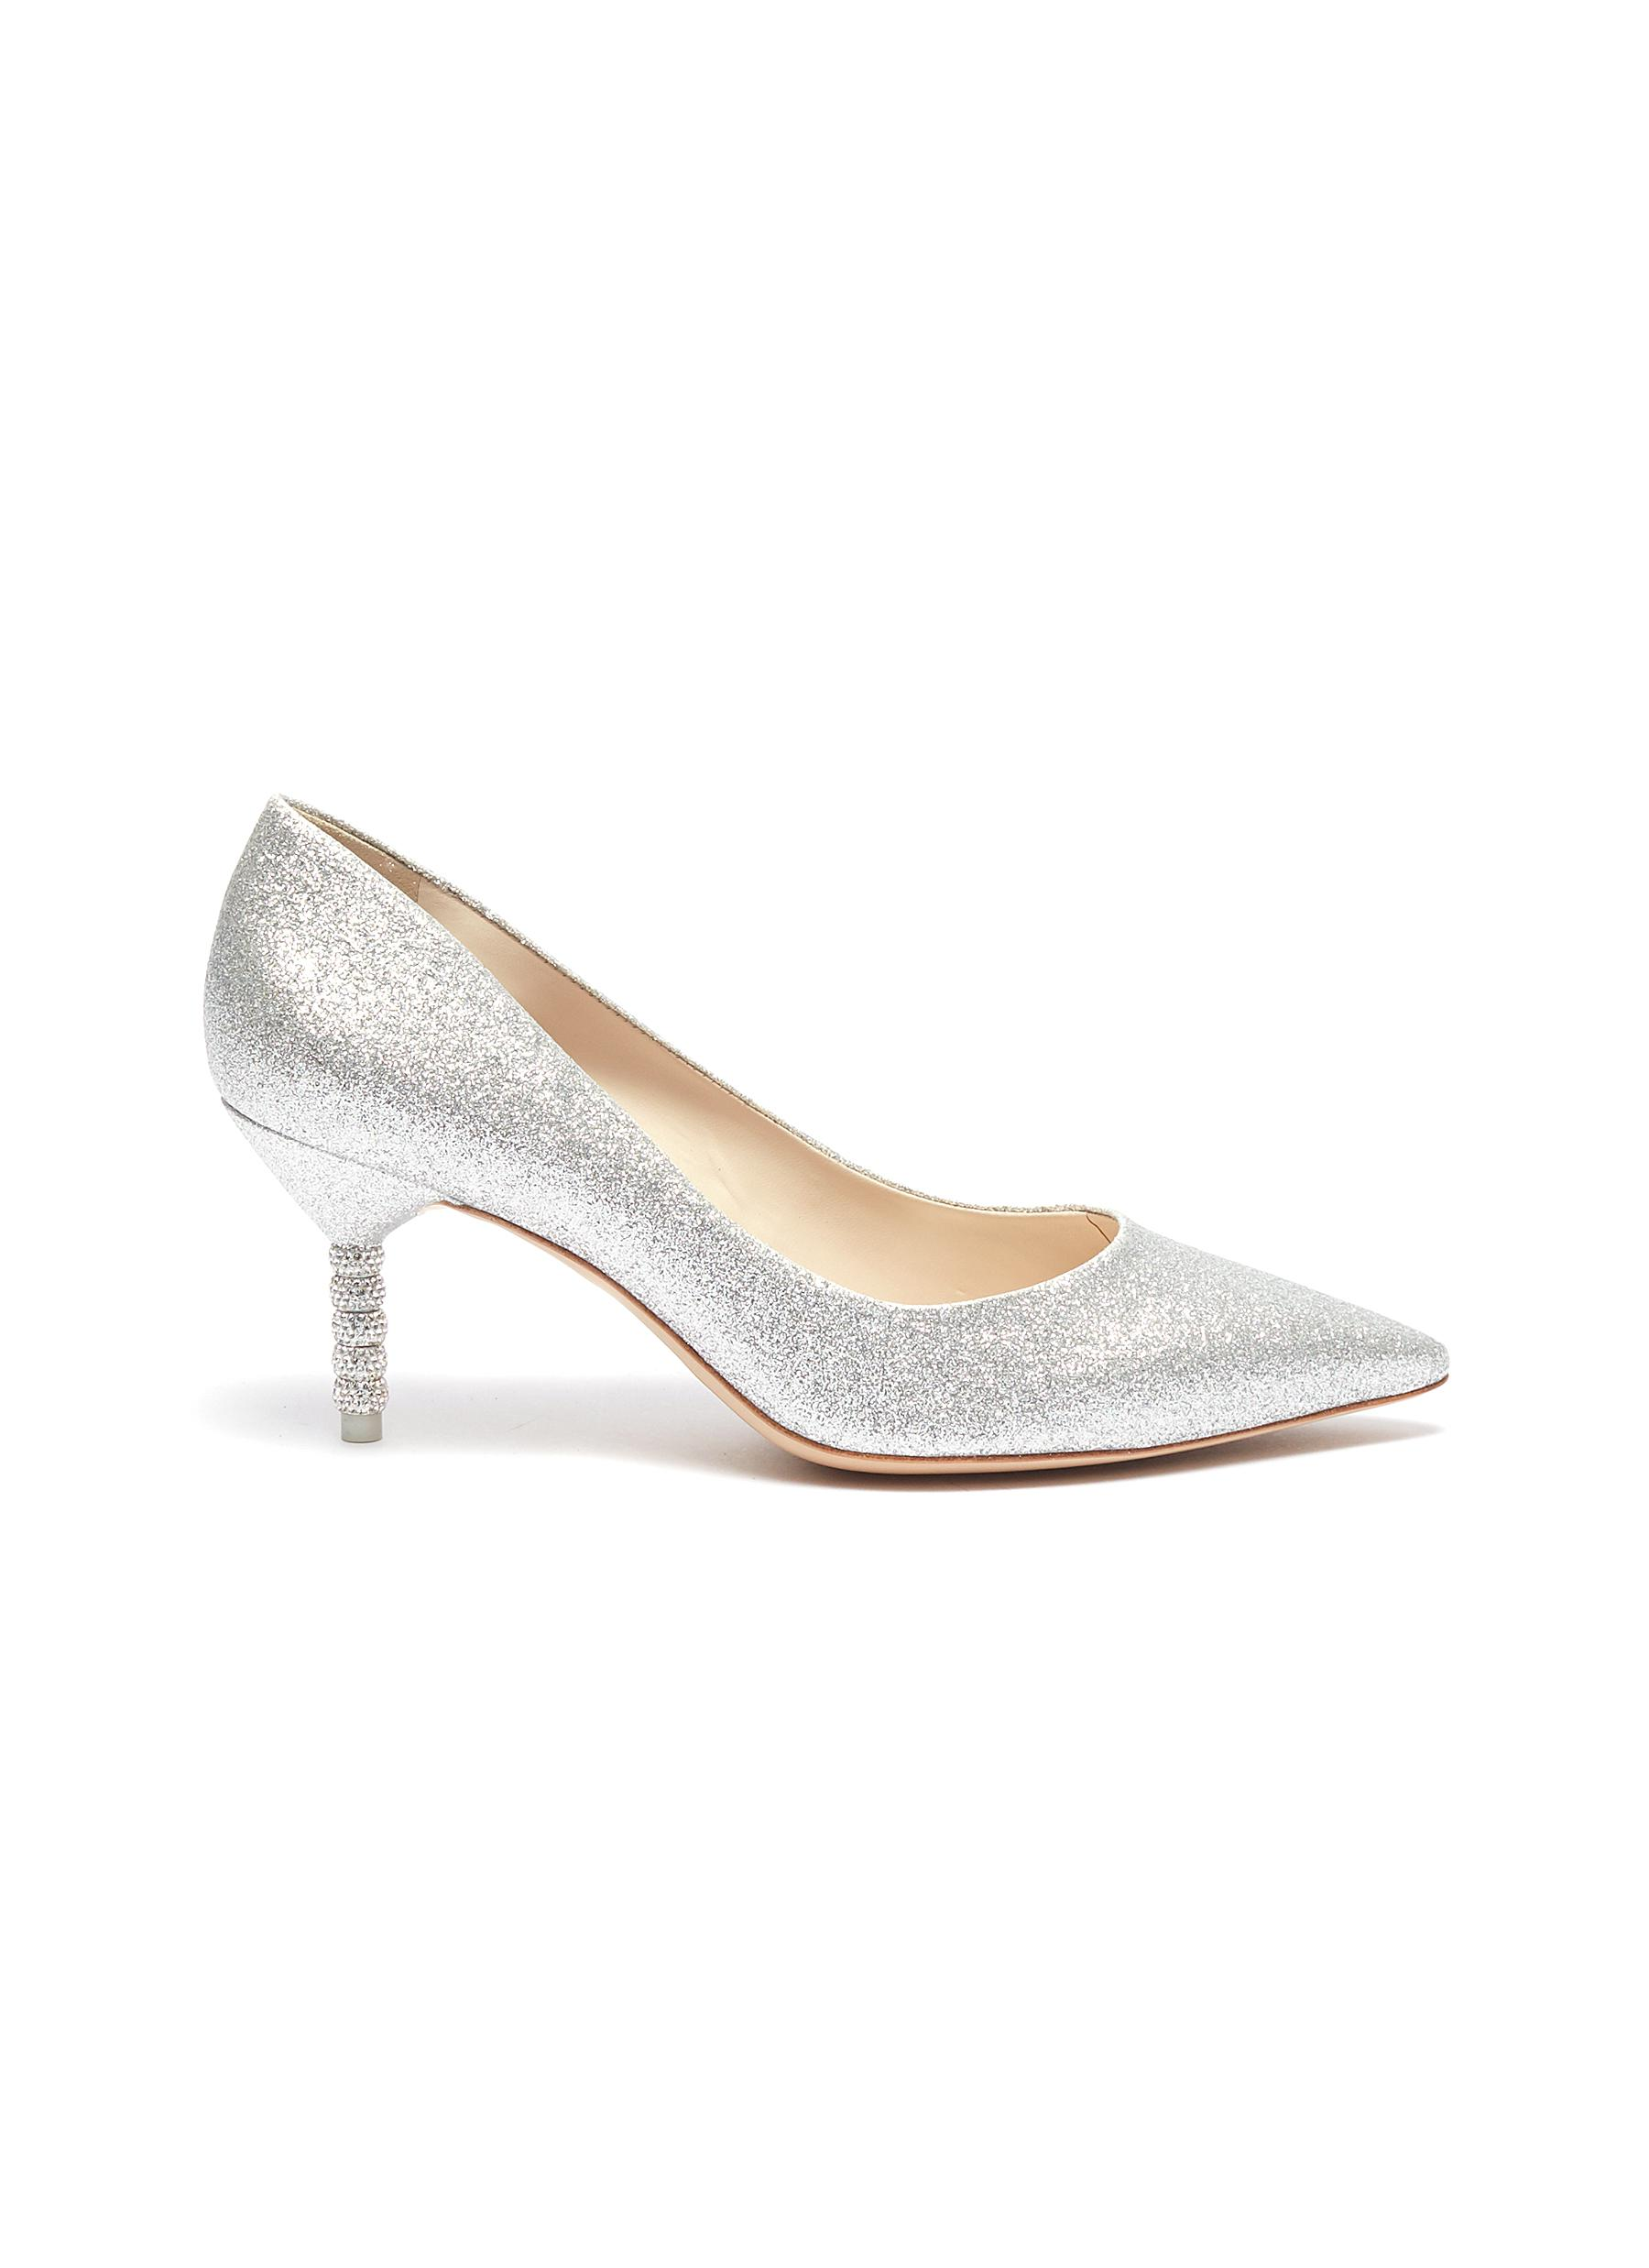 Coco crystal pavé bead heel glitter pumps by Sophia Webster